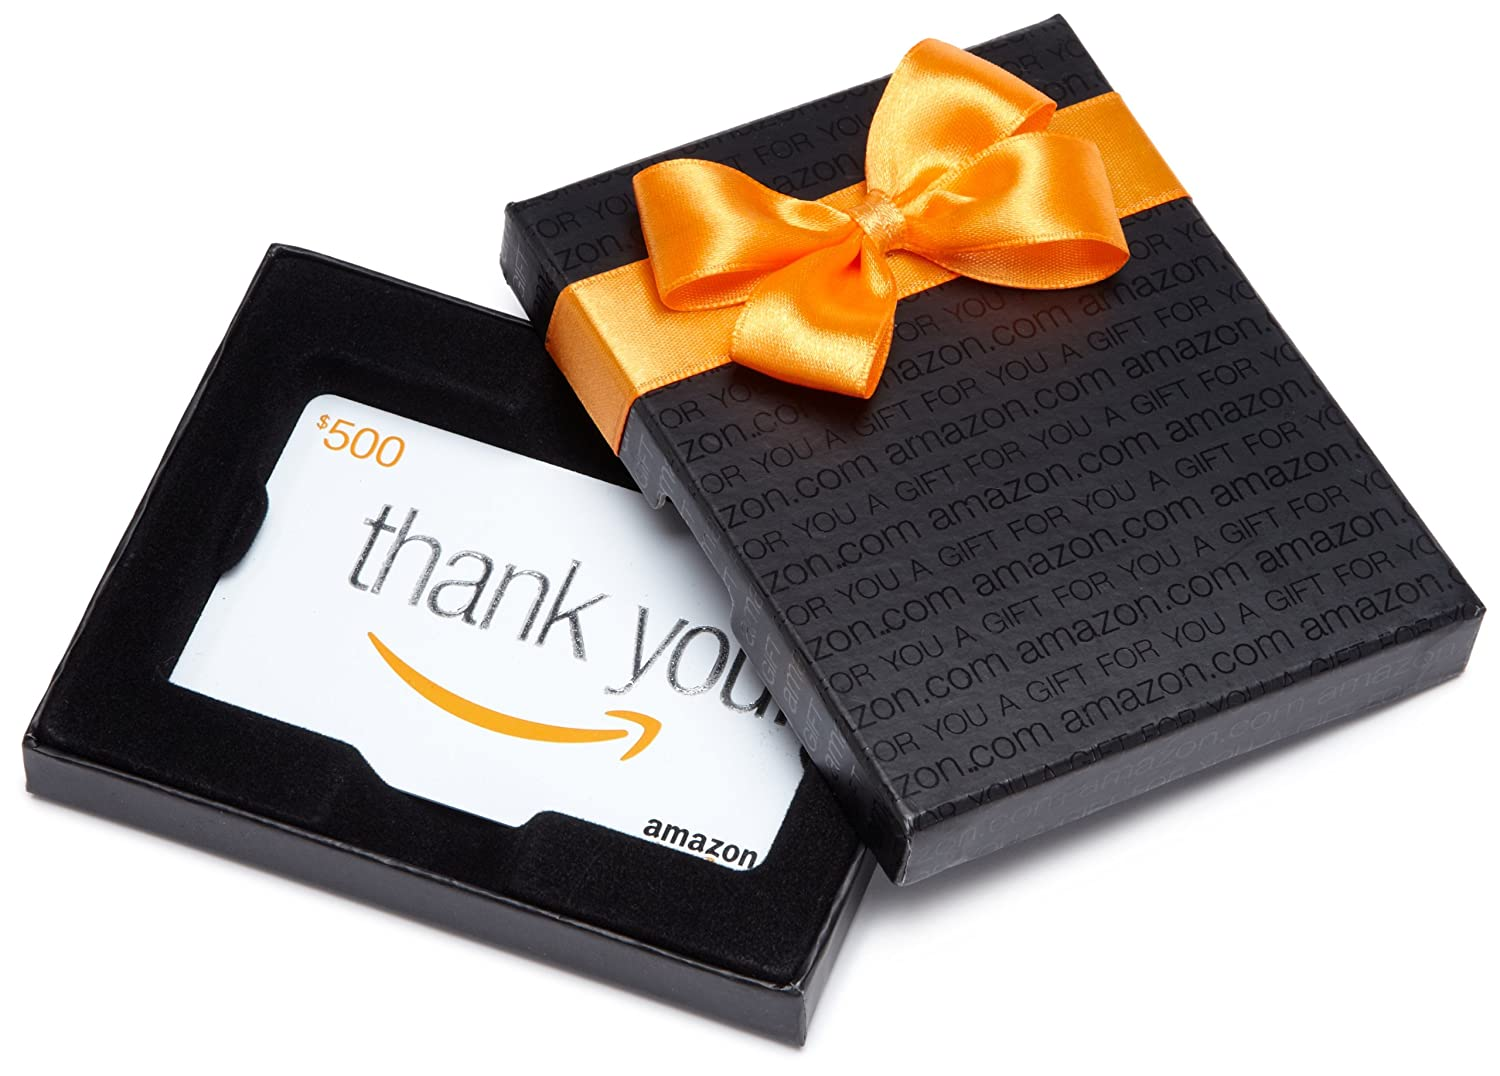 Amazon.com Gift Card in a Black Gift Box (Thank You Card Design)